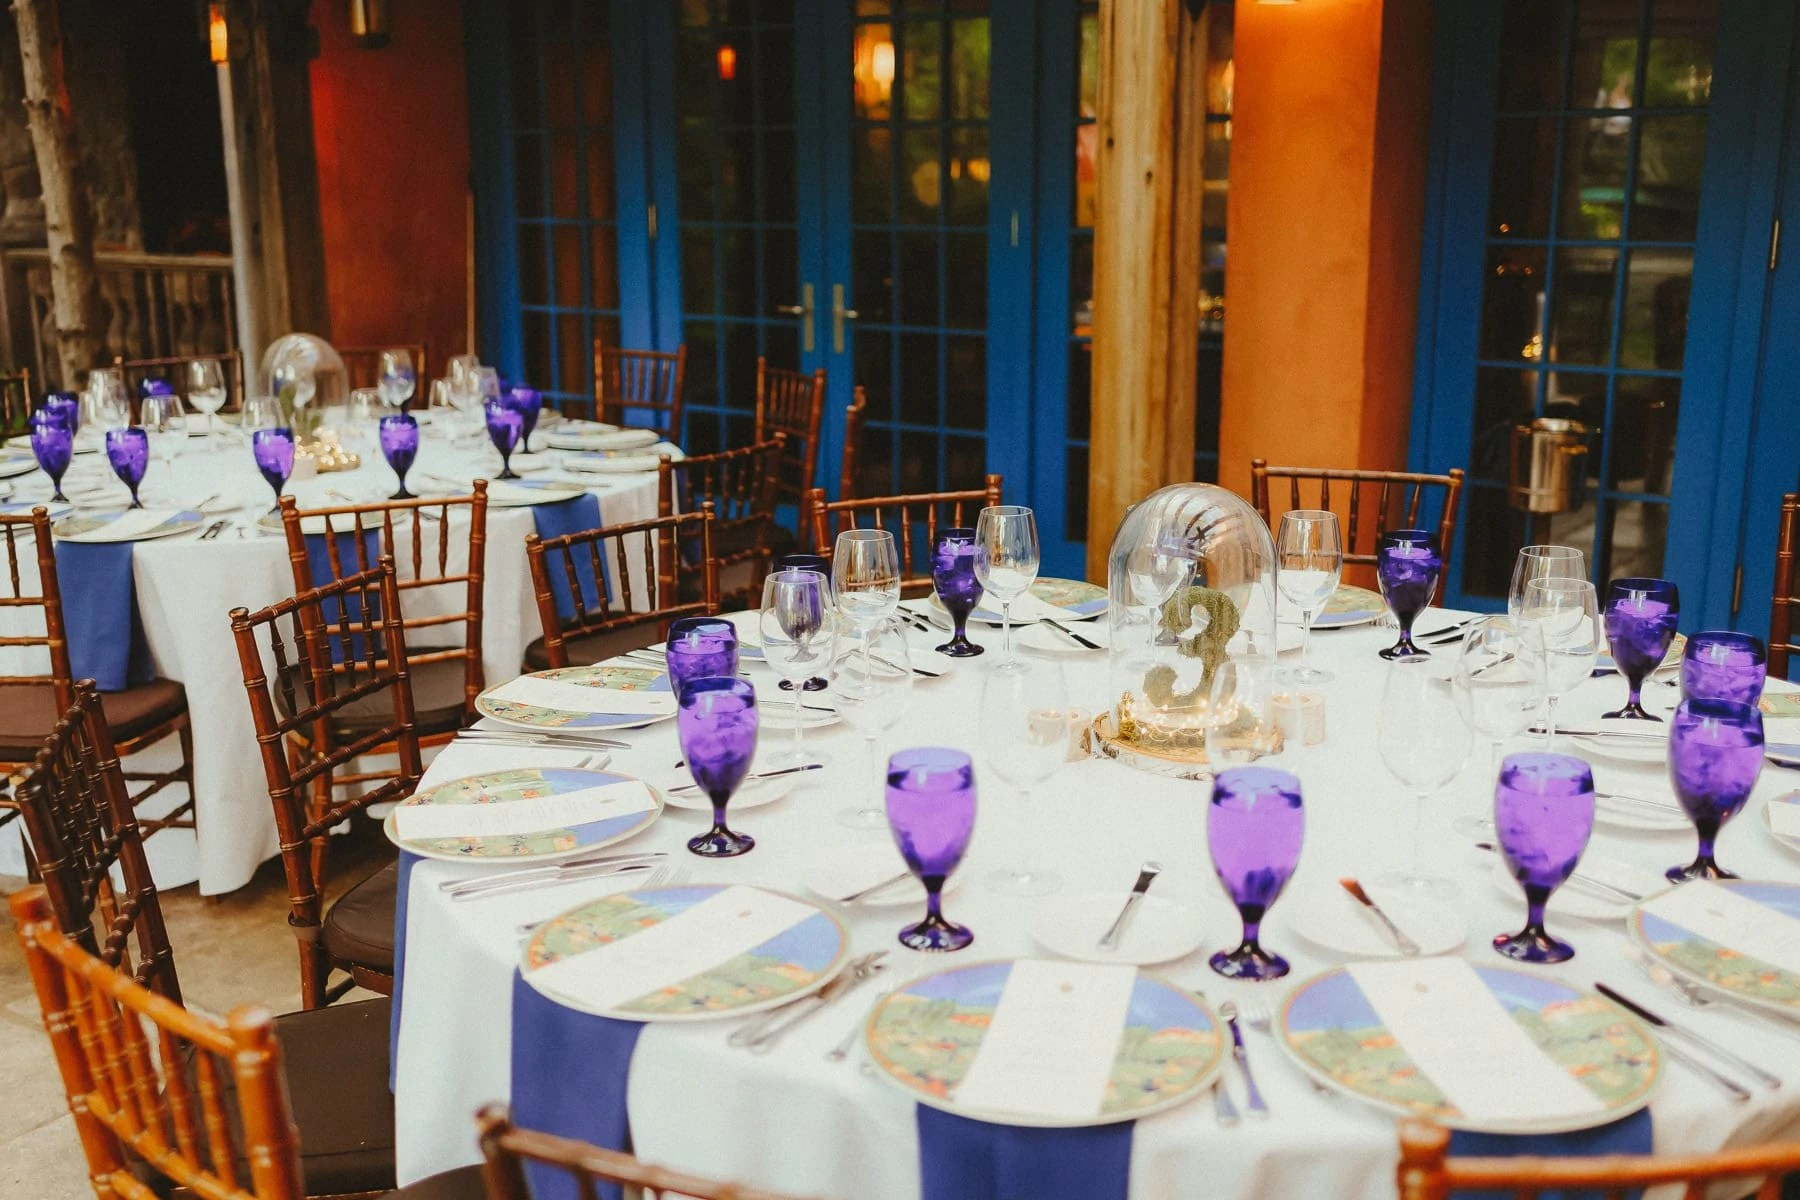 Rat's Restaurant in New Jersey ready for wedding reception